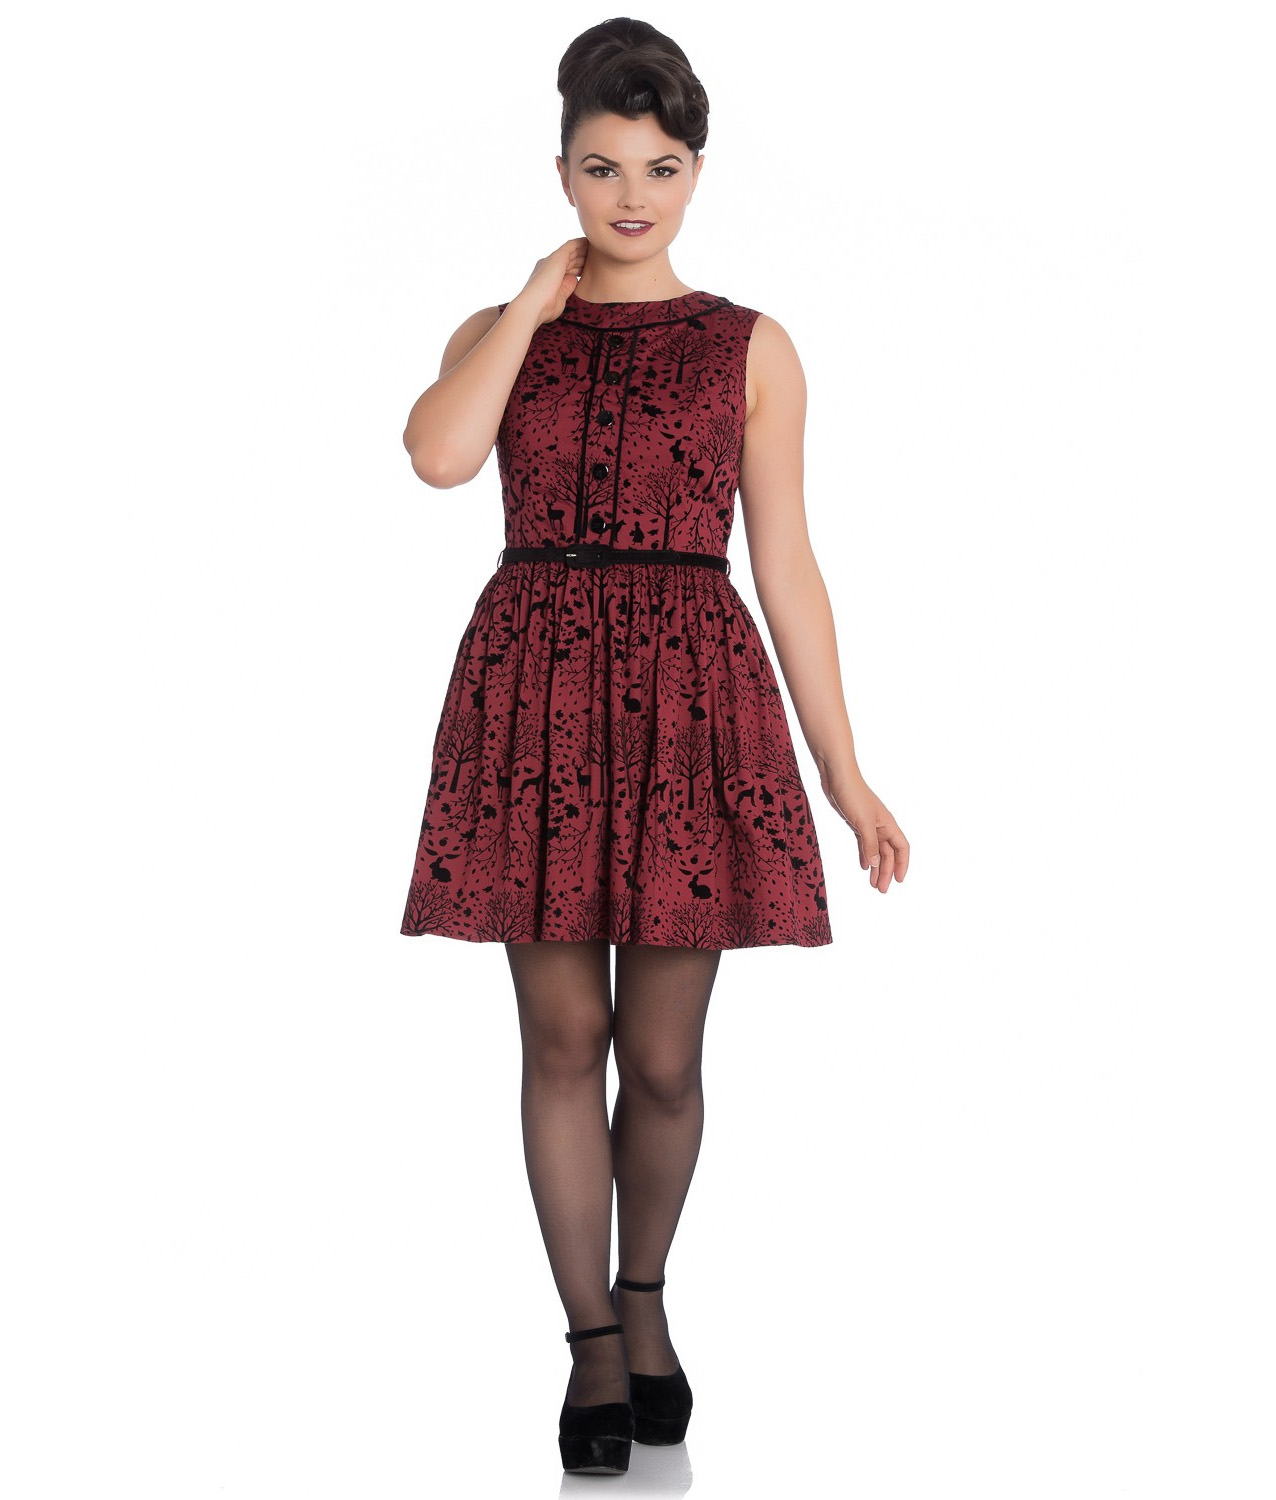 Hell-Bunny-50s-Mini-Skater-Dress-Woodland-Trees-SHERWOOD-Black-Red-All-Sizes thumbnail 19